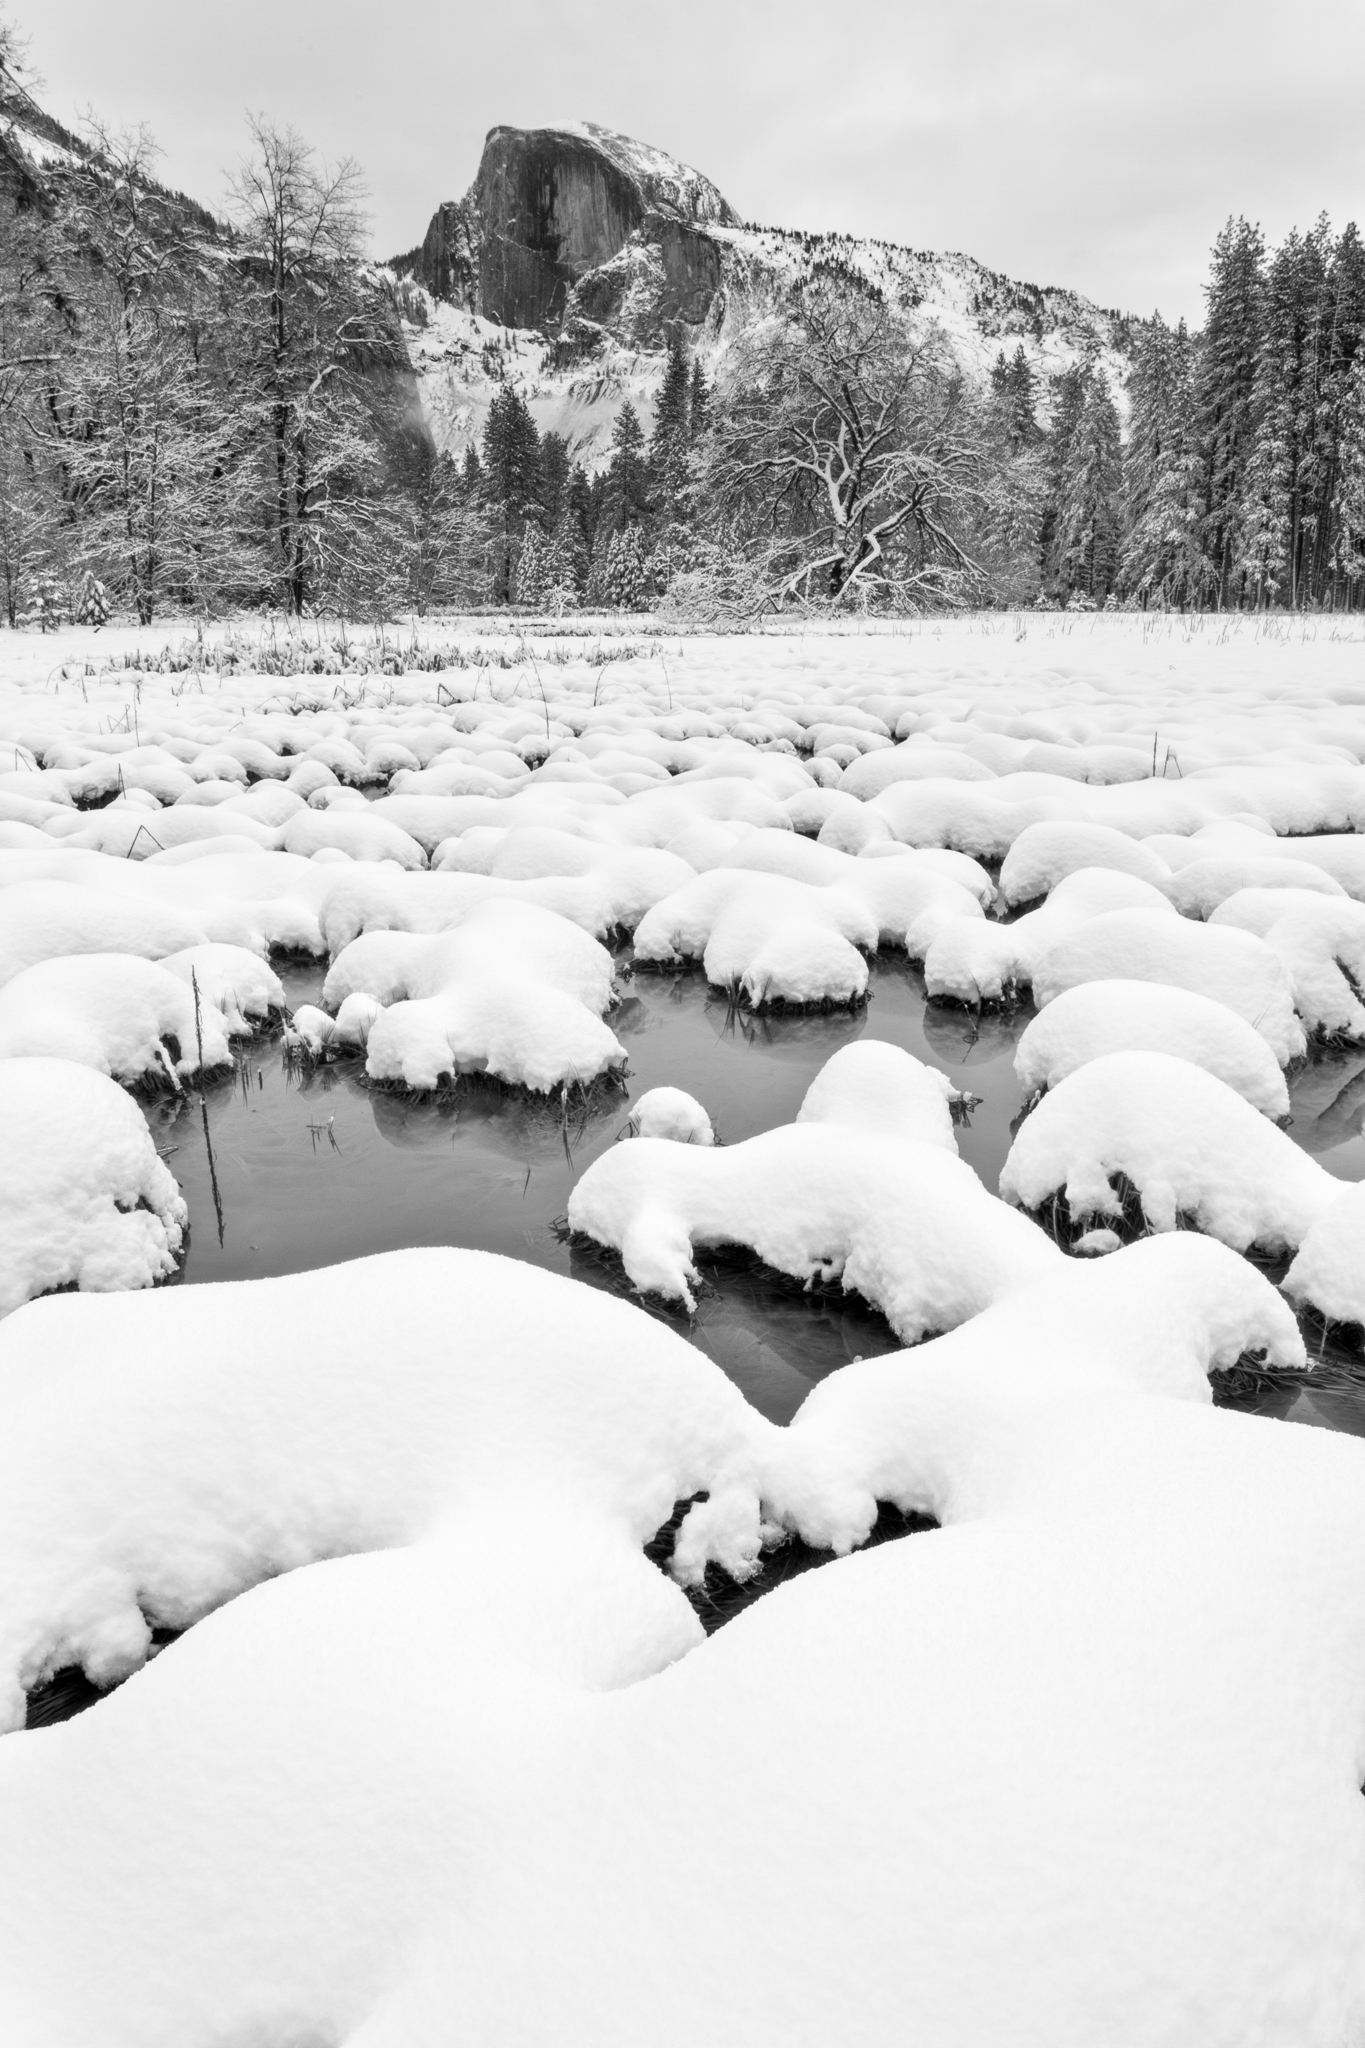 Cooks Meadow in Yosemite National Park is a great place to practice winter photography.